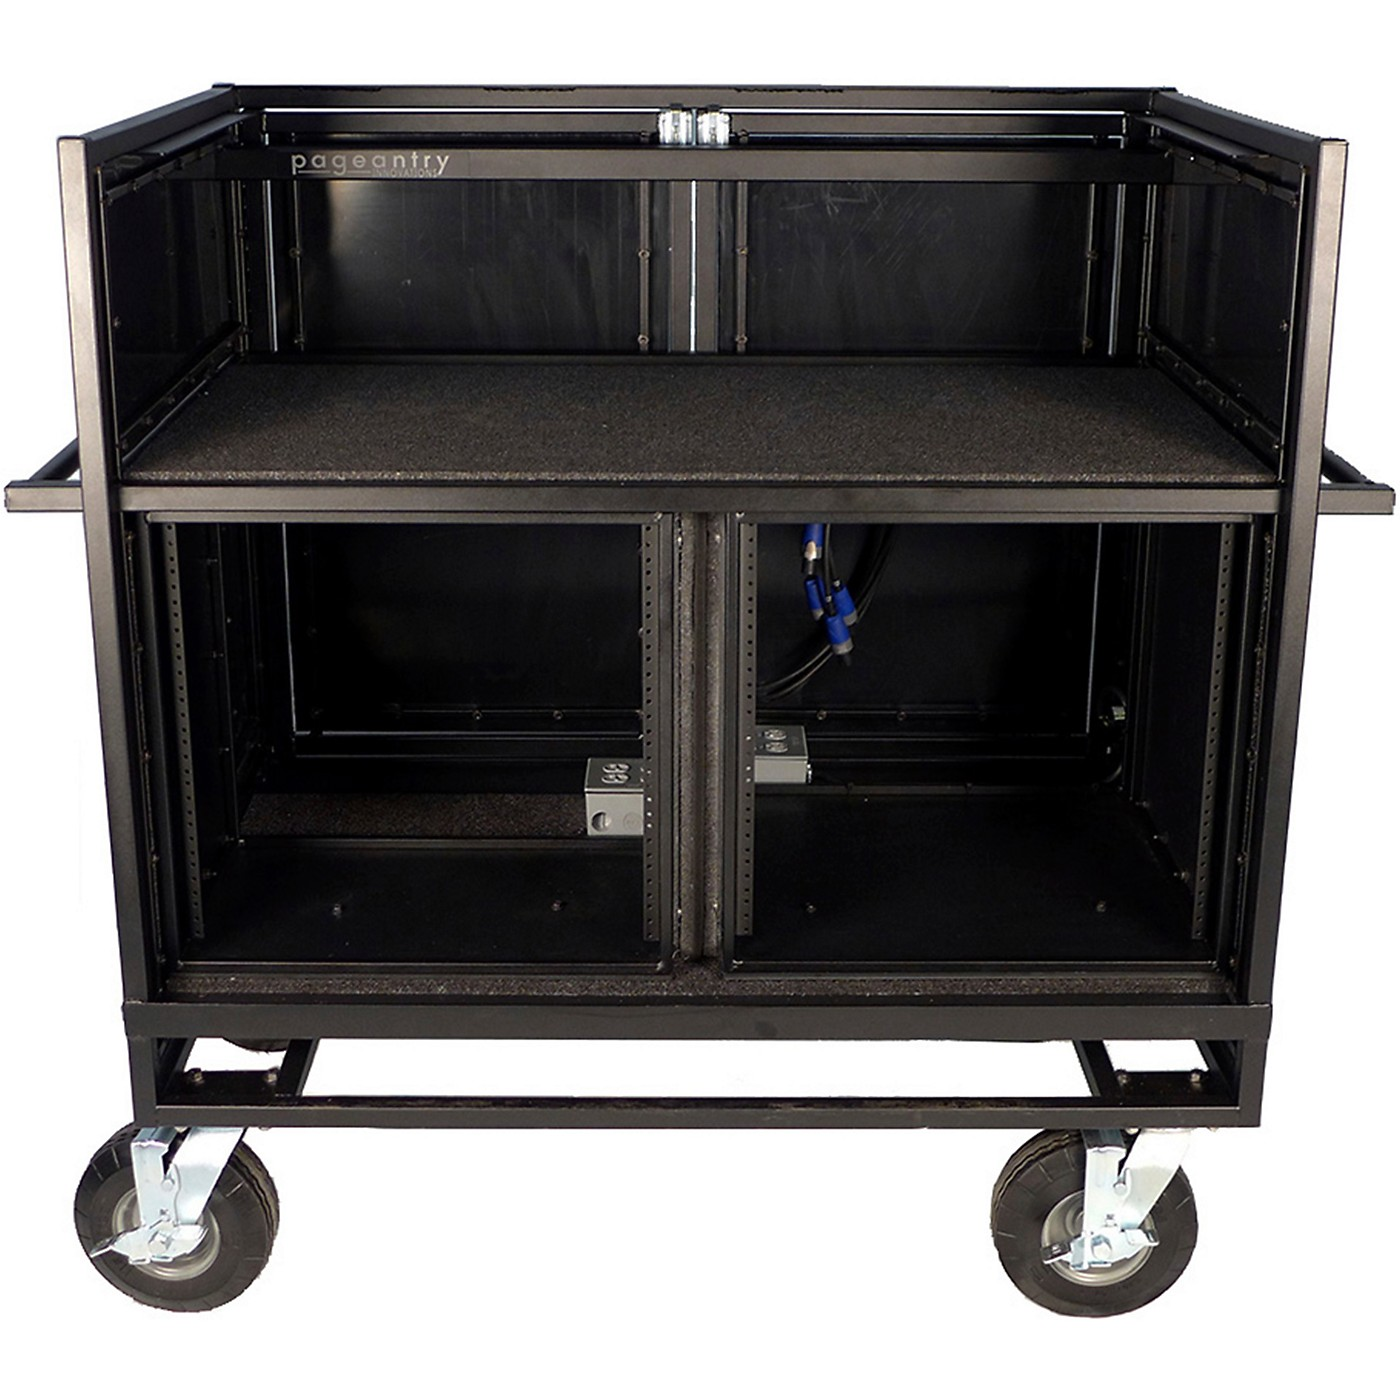 Pageantry Innovations Double Mixer Cart Stealth Series Upgrade thumbnail